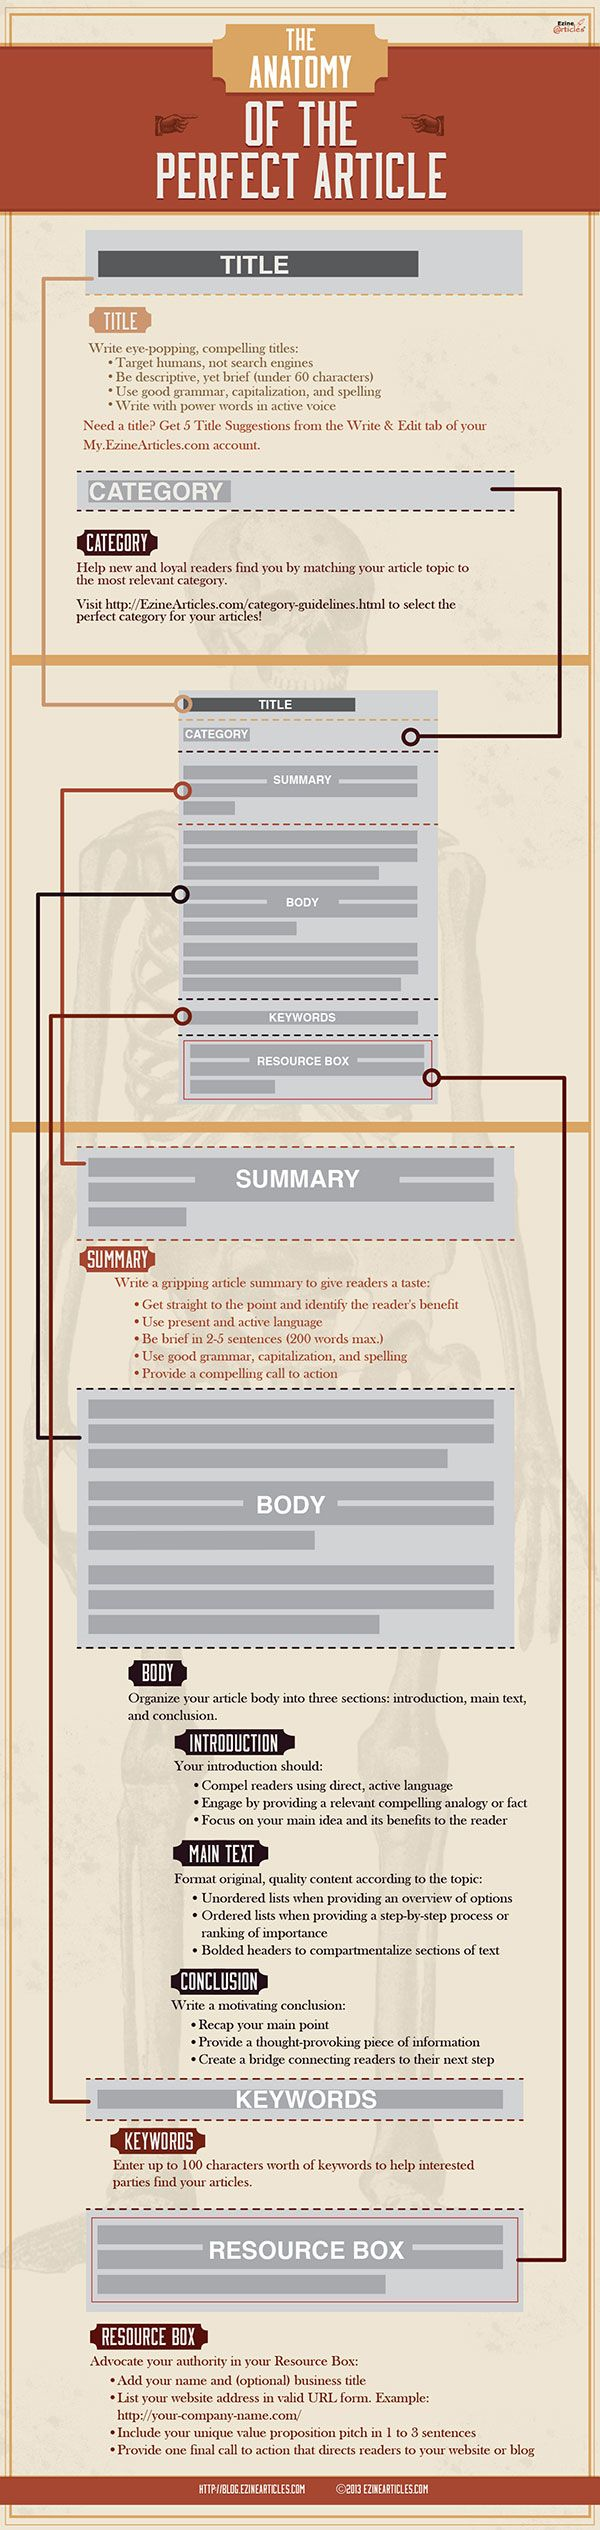 The Anatomy of the Perfect Article - #infographic | Pinterest ...